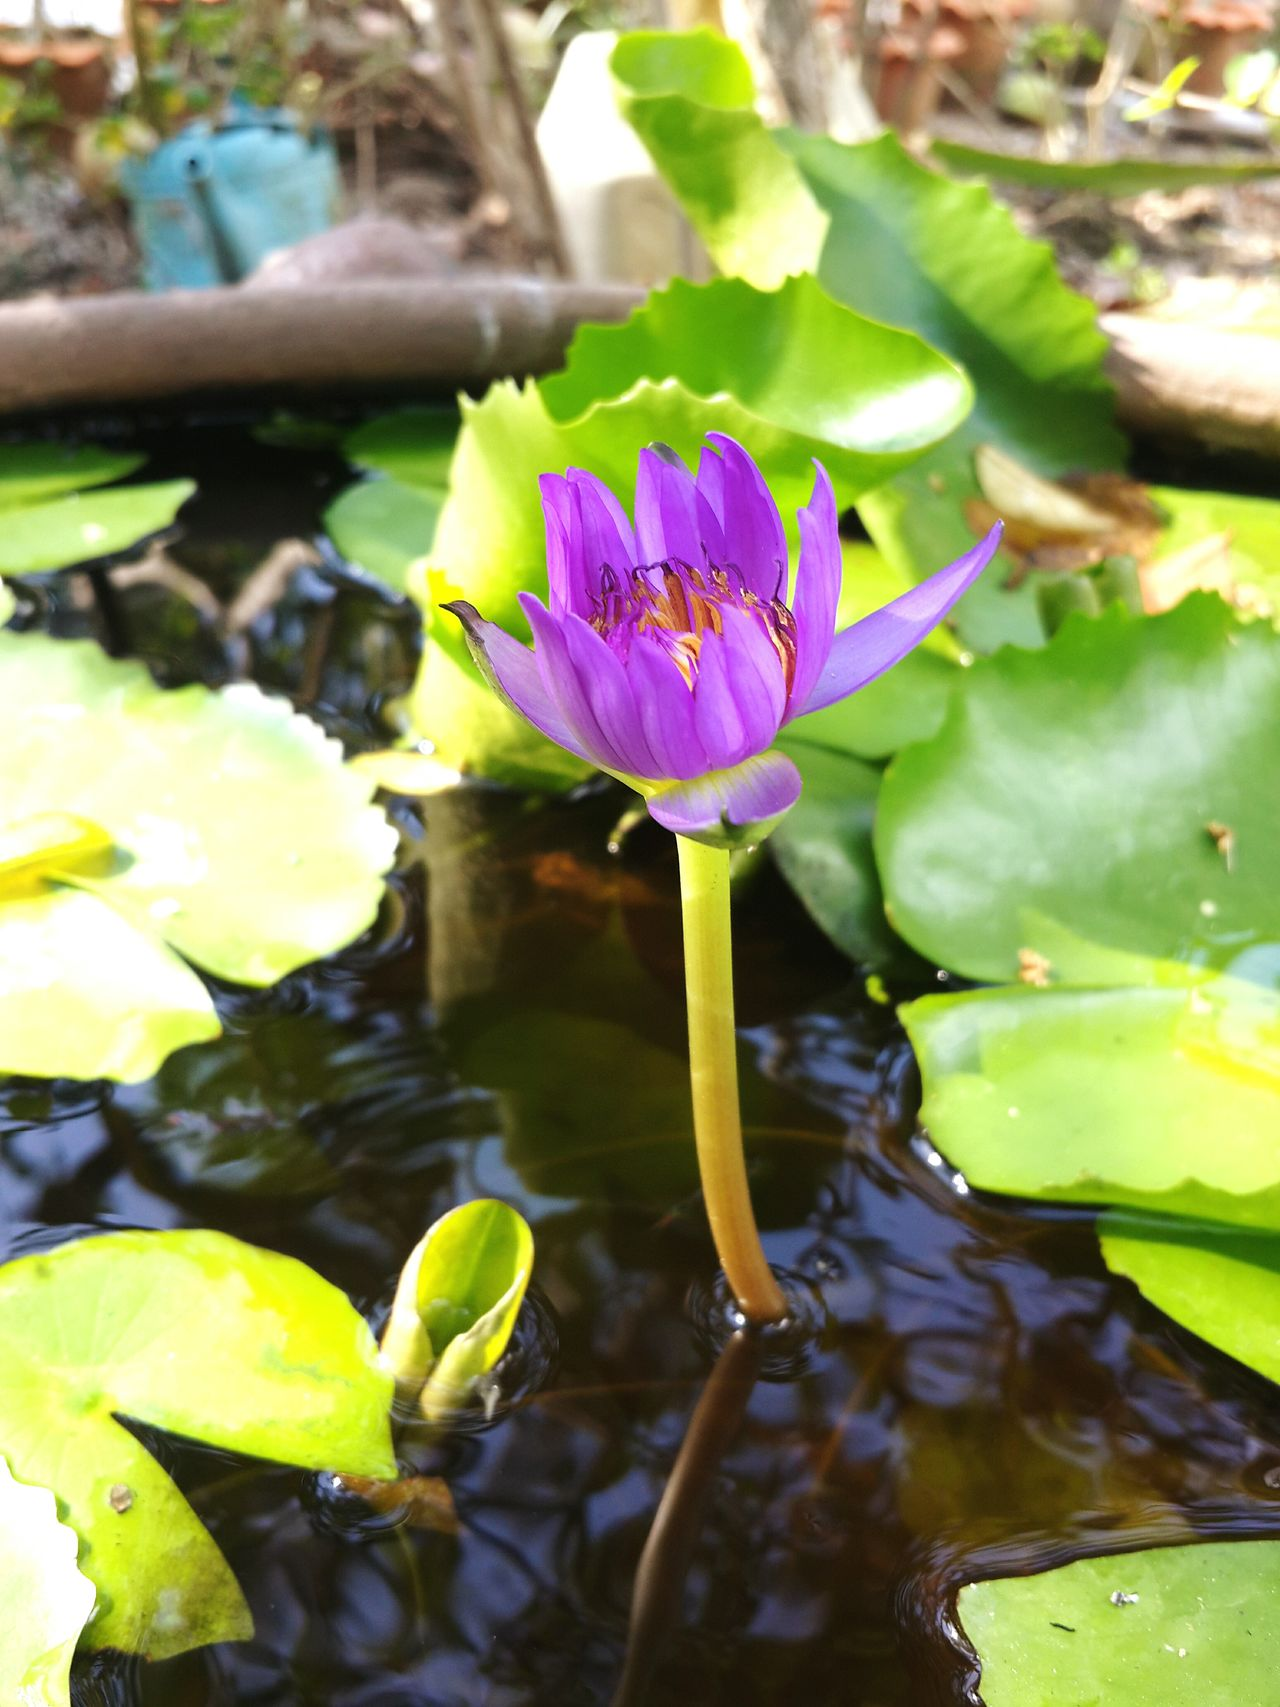 Leaf Water Lily Pond Flower Nature Water Floating On Water Plant Beauty In Nature Water Plant Purple Lotus Water Lily Outdoors No People Close-up Day Multi Colored Flower Head Freshness Fragility